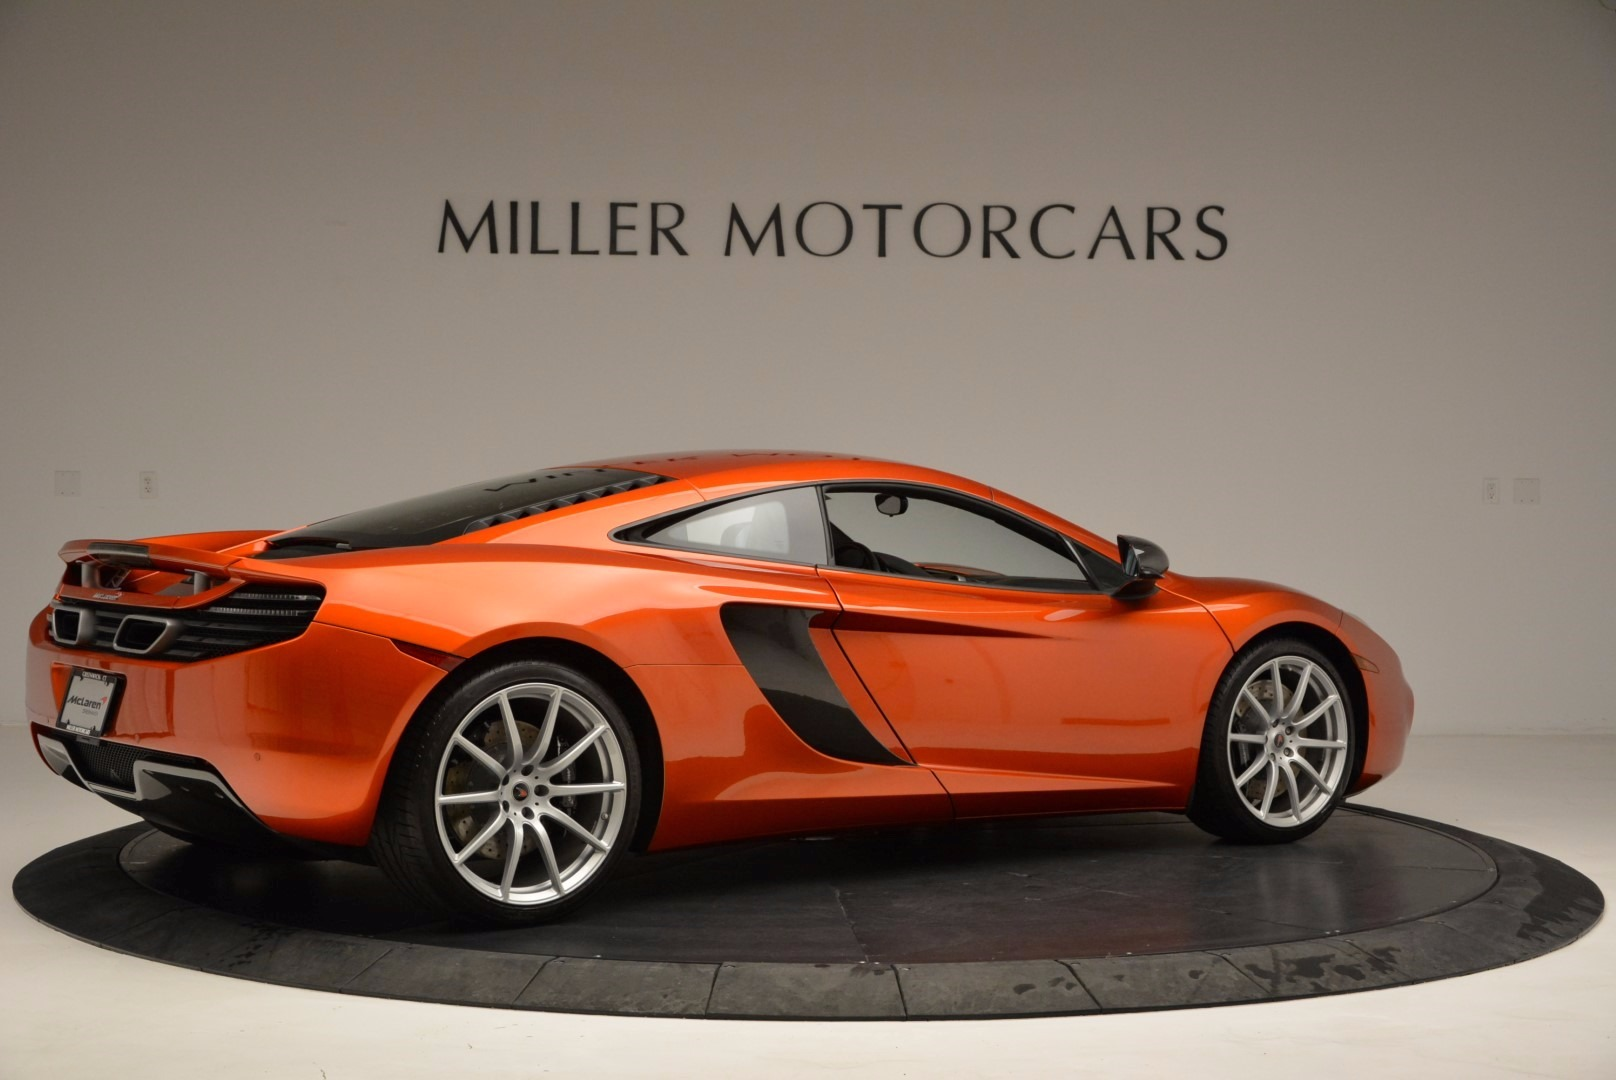 Used 2012 McLaren MP4-12C  For Sale In Greenwich, CT. Alfa Romeo of Greenwich, 3094 1035_p8